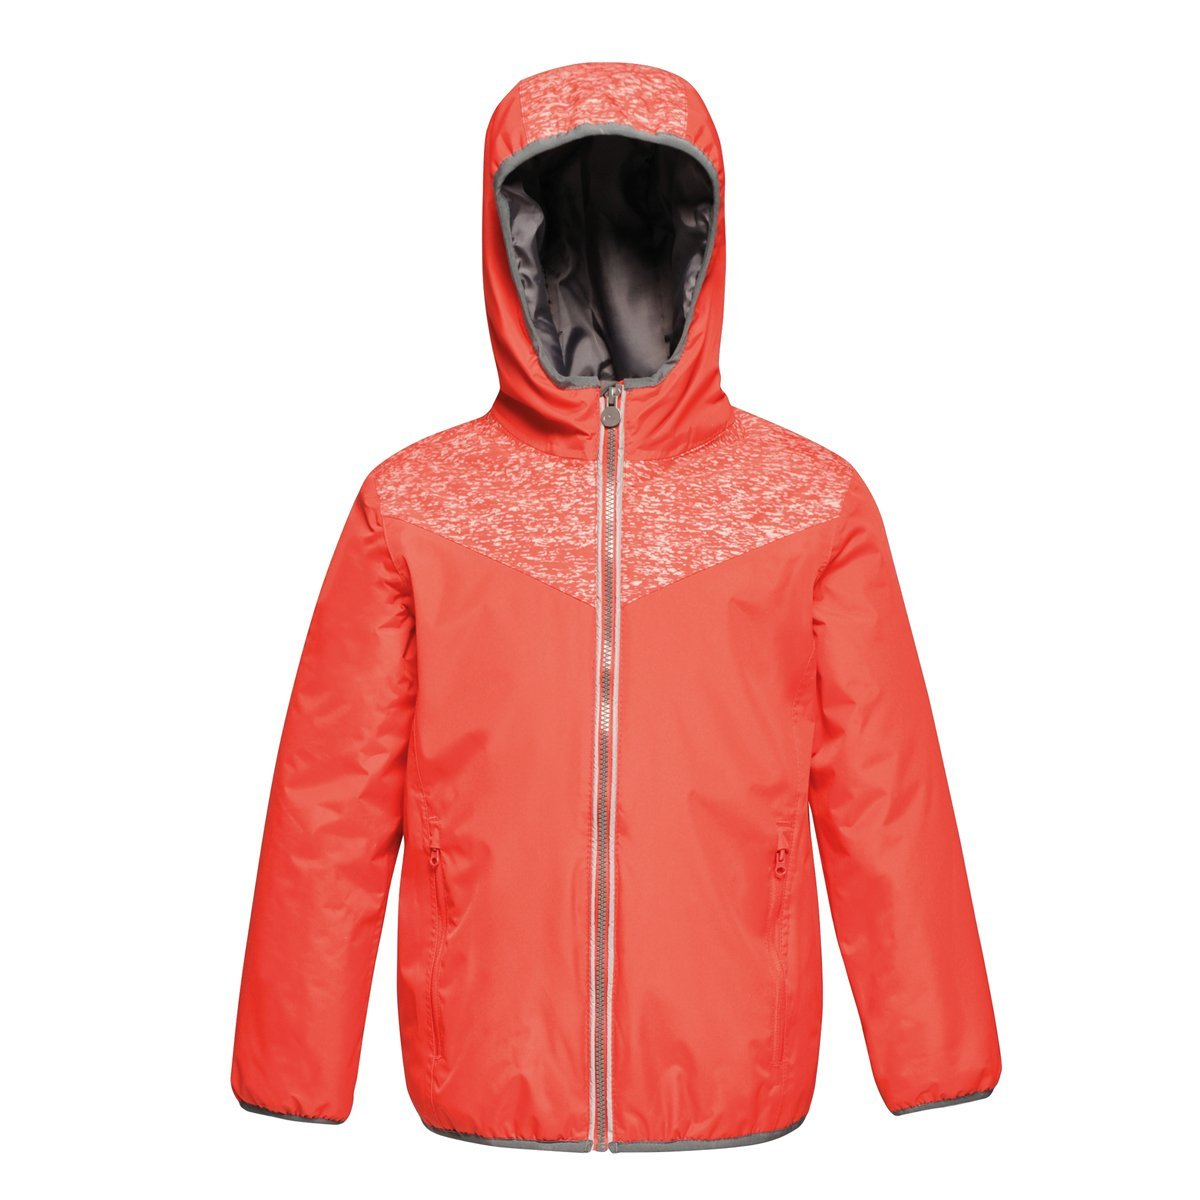 Regatta Kids' Reflector Jacket Various Colours T_TRA318 - Classic Red 5/6 Years